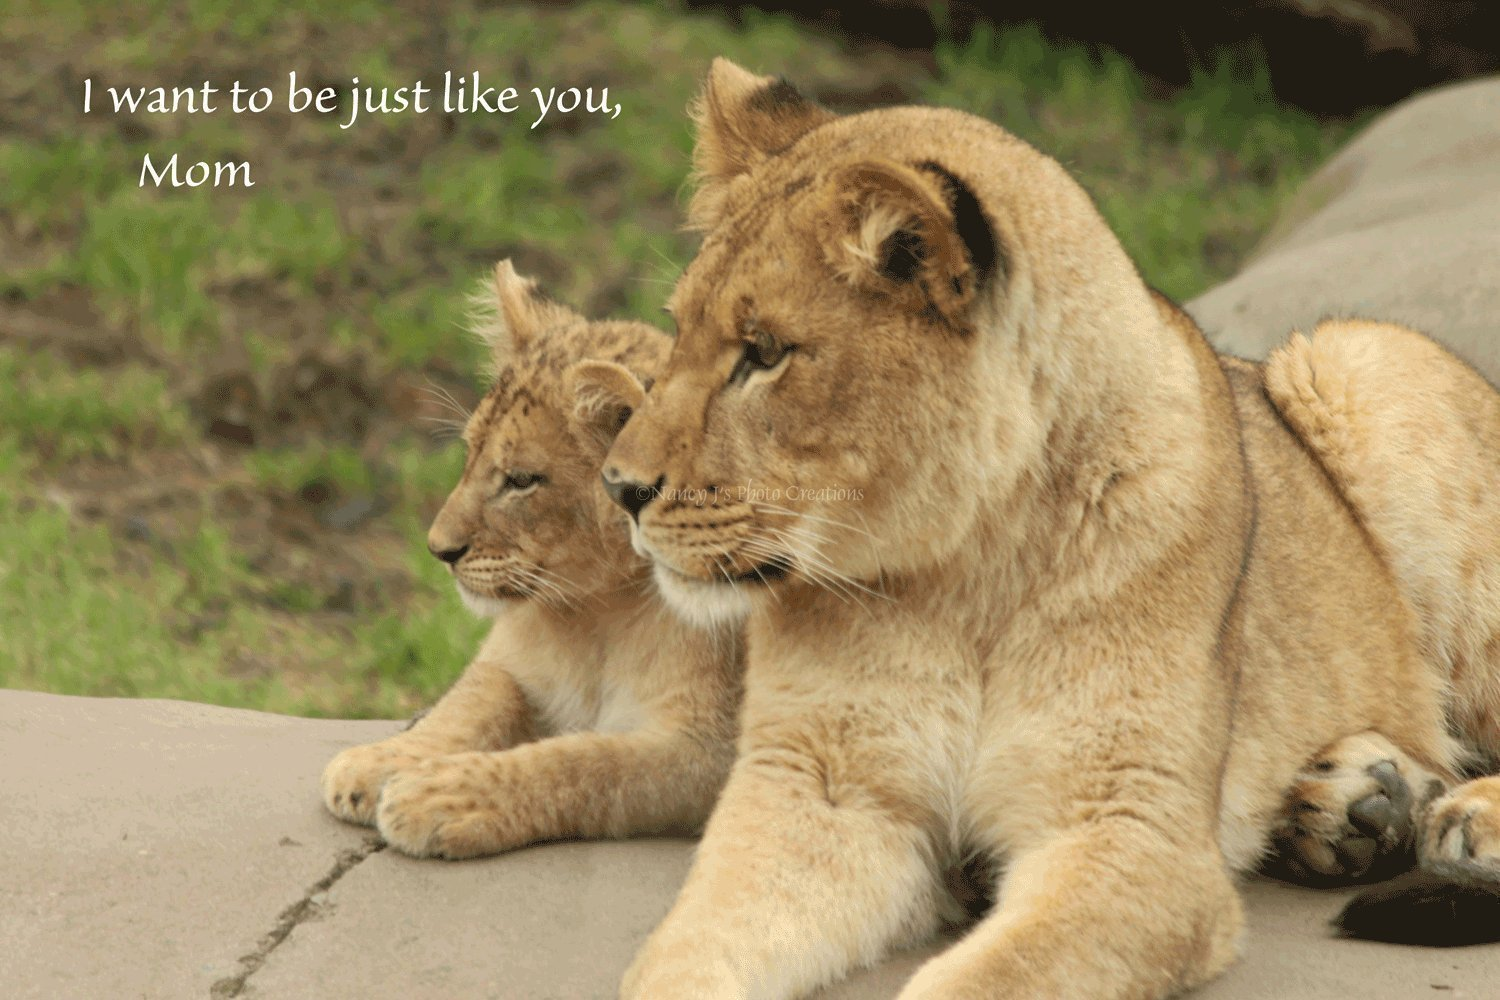 Amazon.com: Gift for Mom Unframed Photo of Lioness and Lion ...